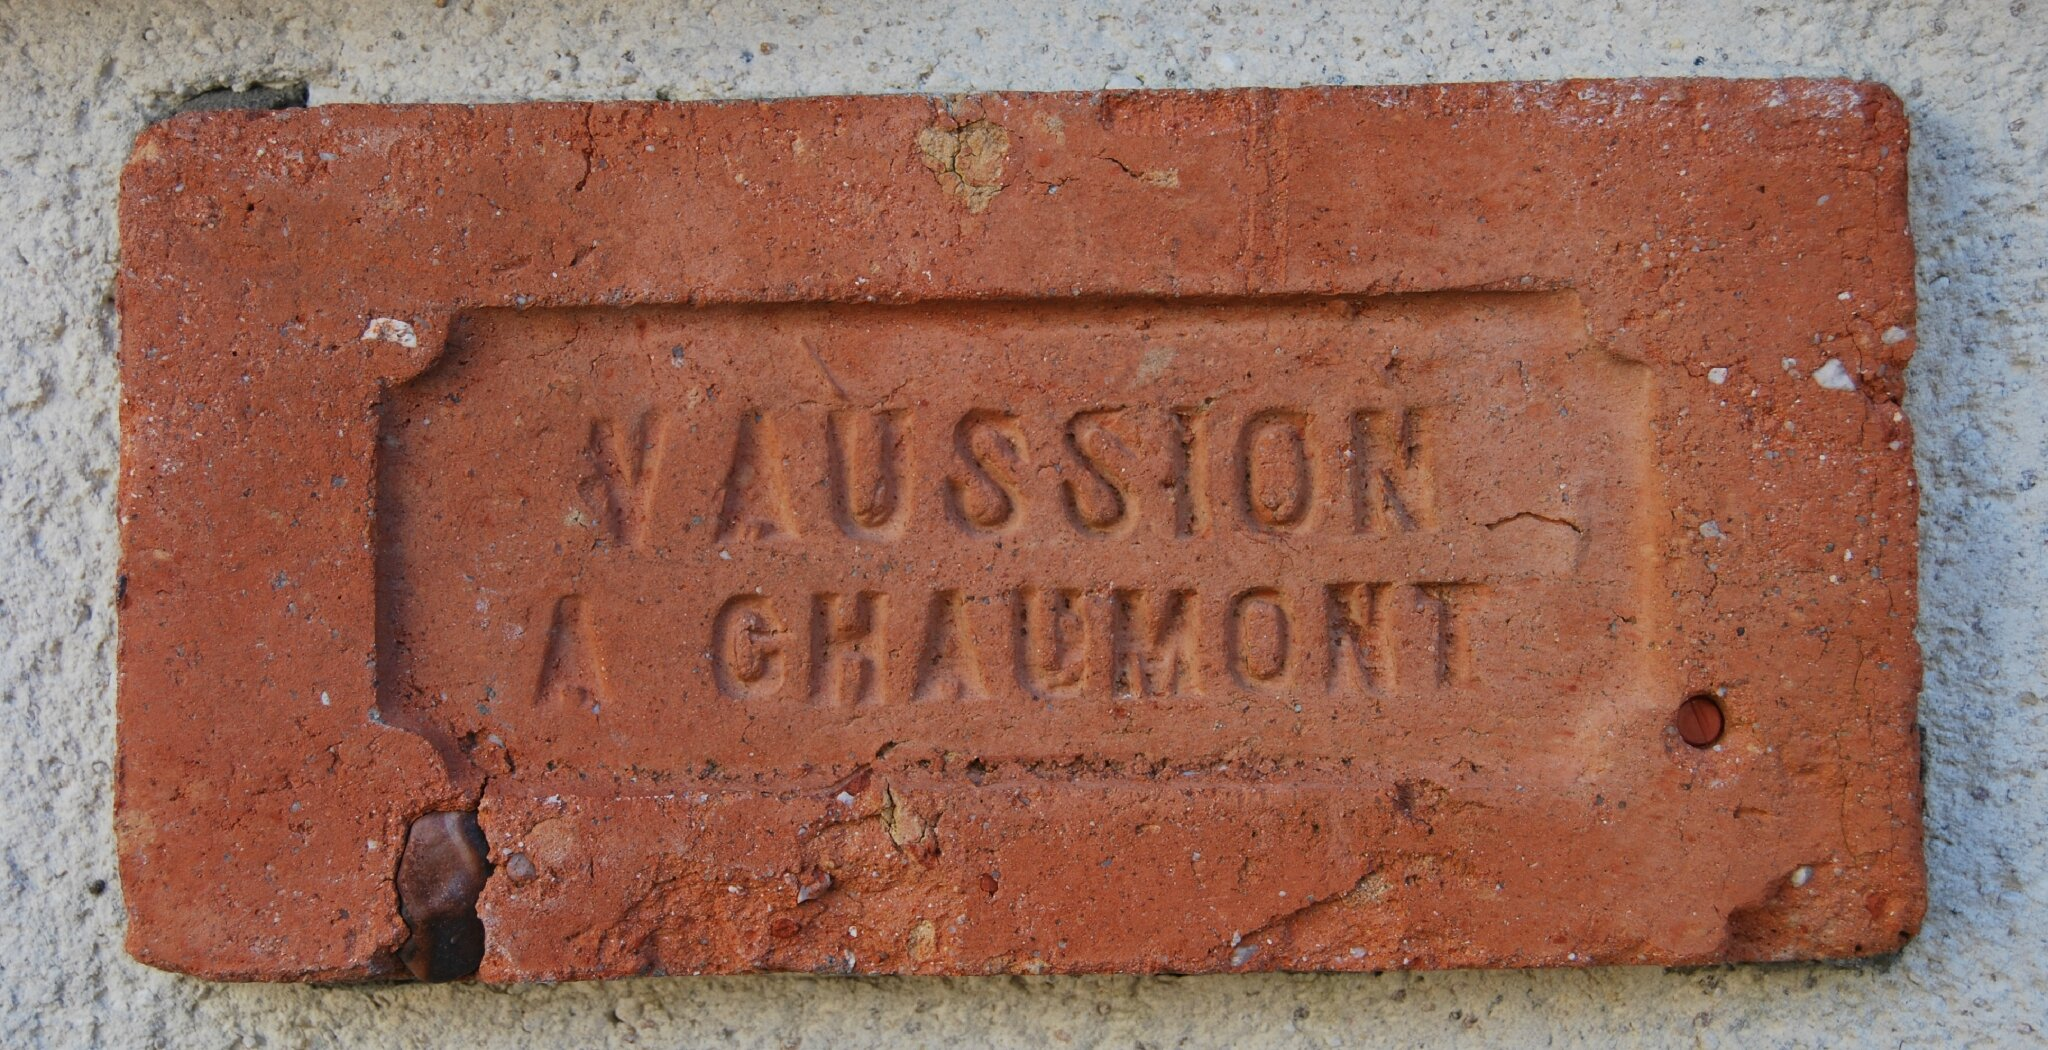 Vaussion à Chaumont 2